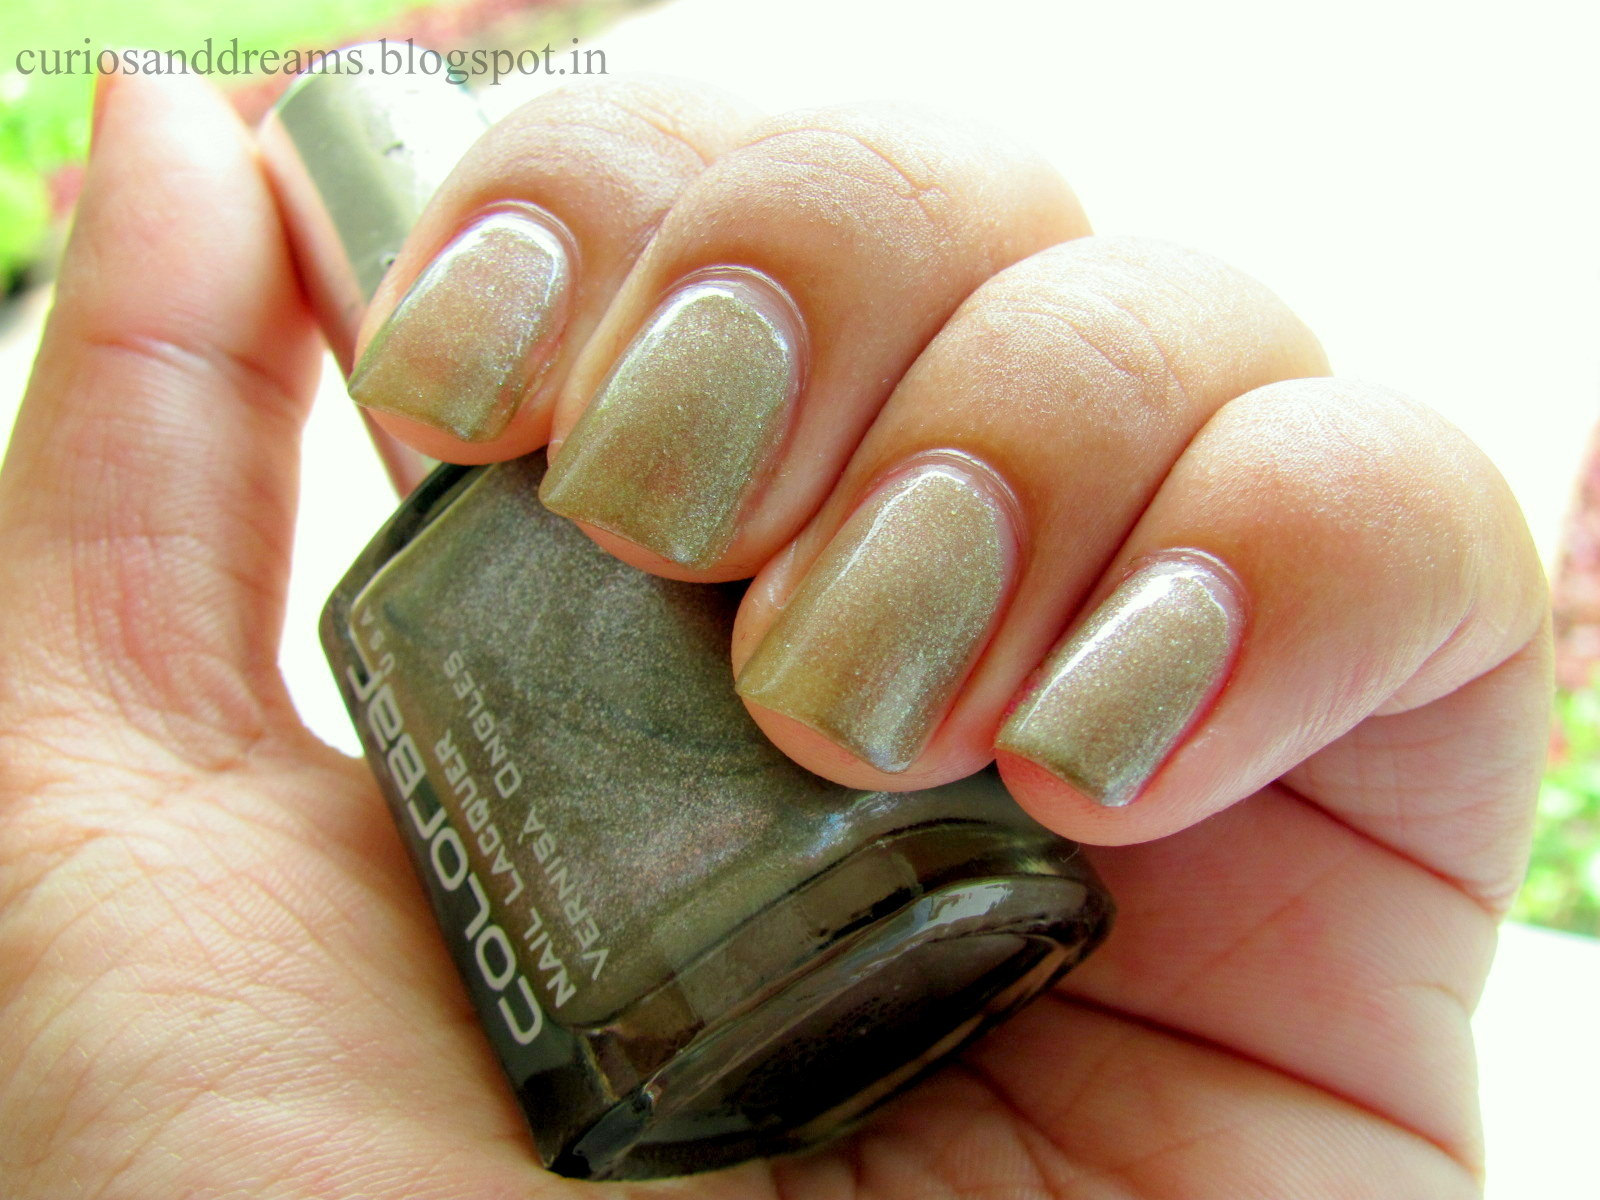 Colorbar Exclusive Nail Lacquer 06 swatch, Colorbar Exclusive 06